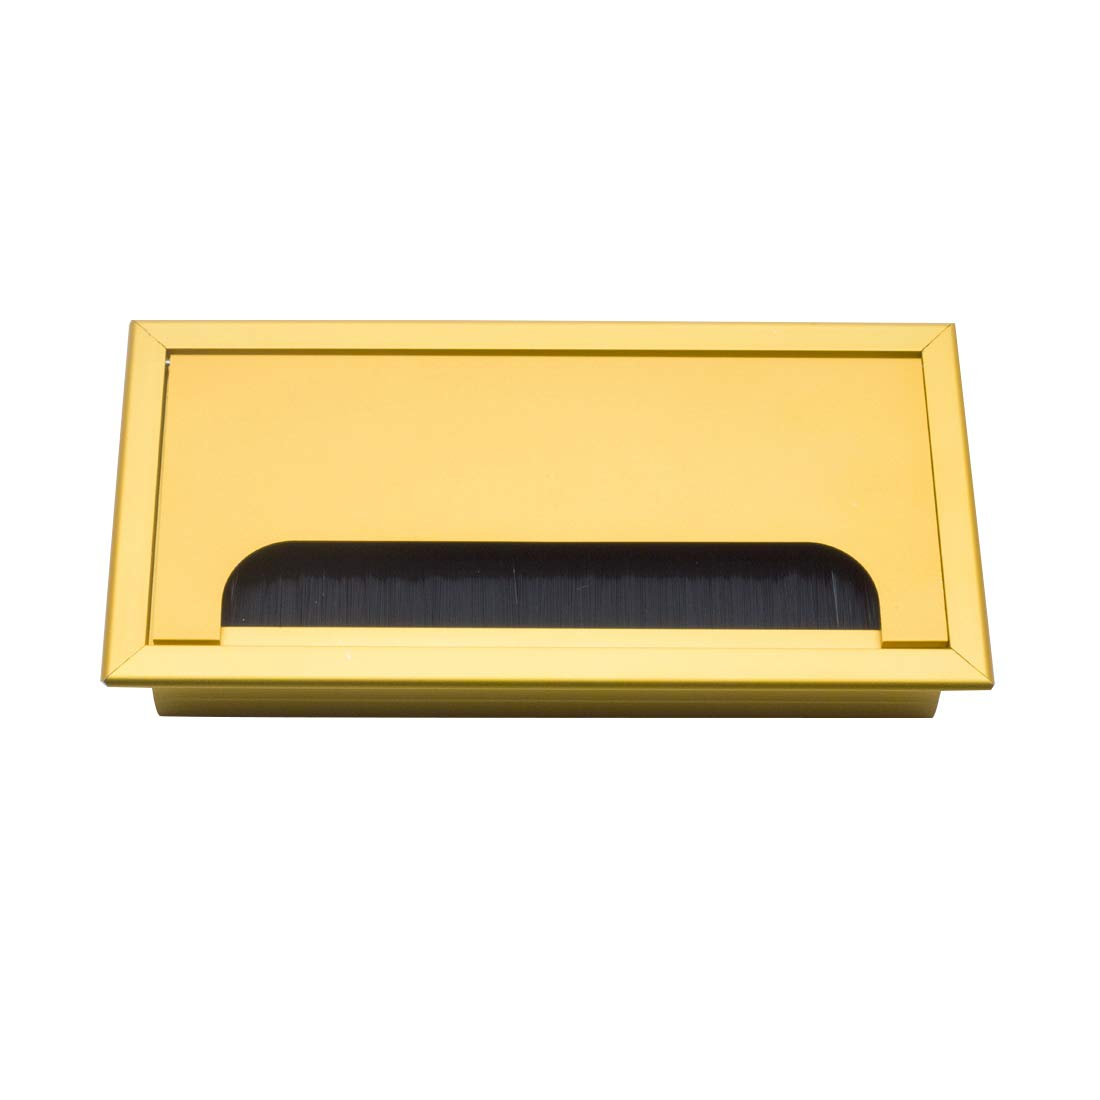 Autoly Desk Grommet Gold Desk Cord Cable Hole Cover Grommet for Computer Table, 160mm Length